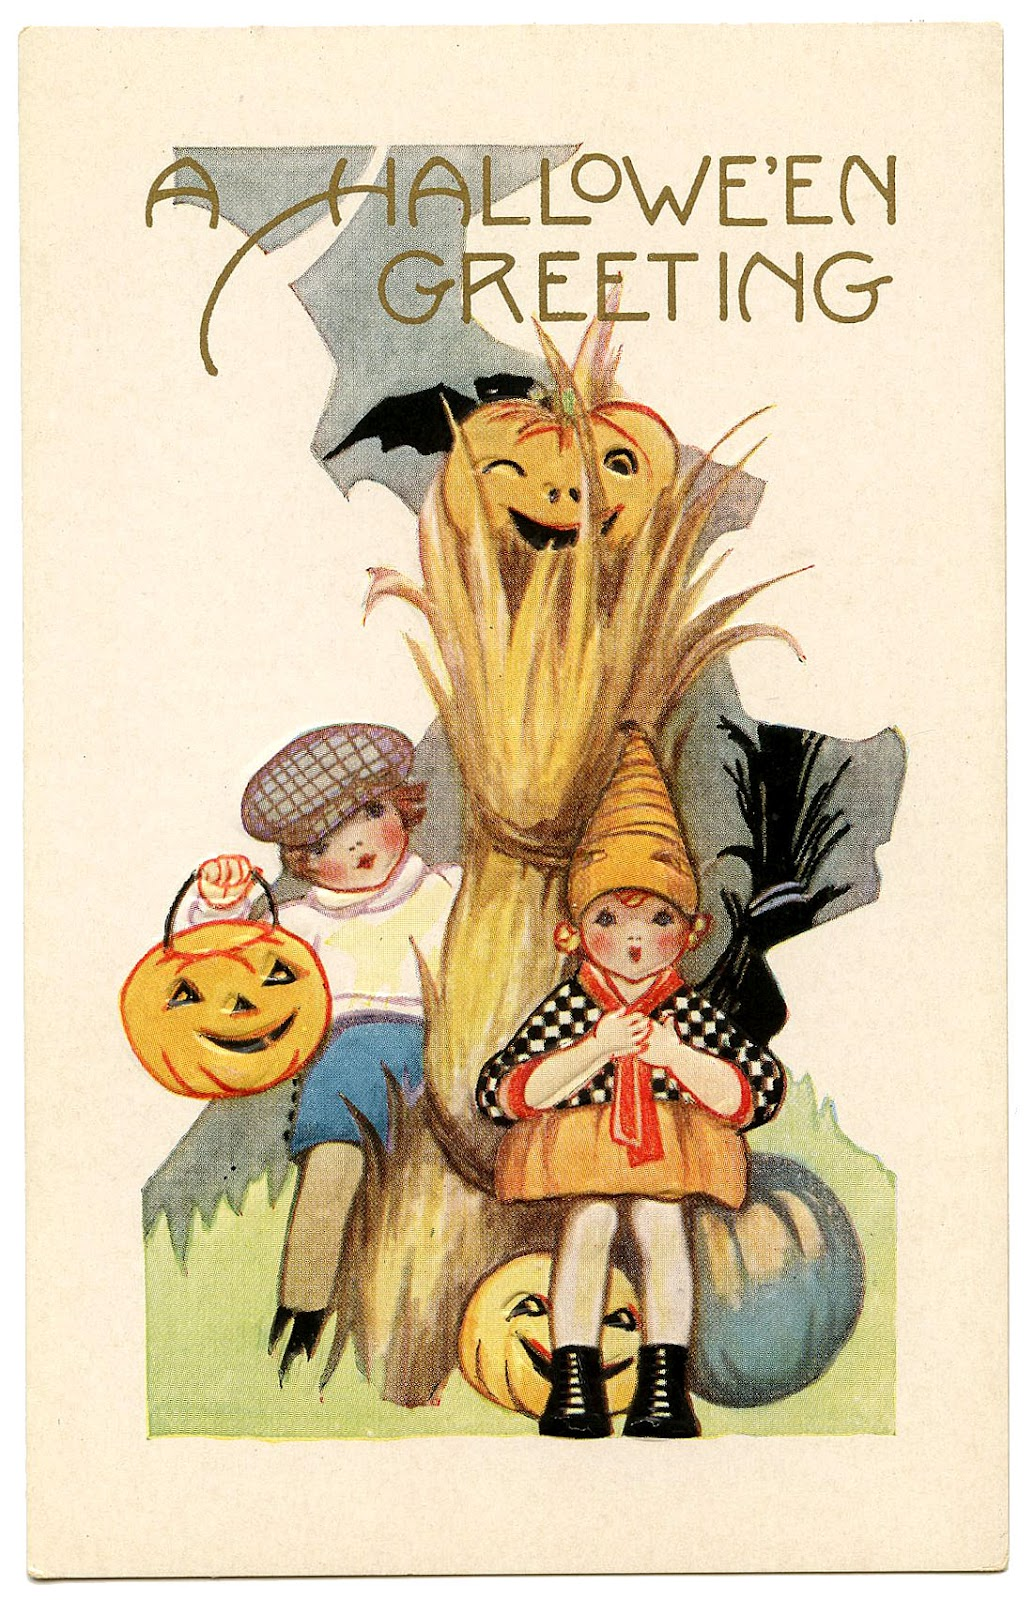 Vintage Halloween Graphic - Cute Kids with Pumpkins